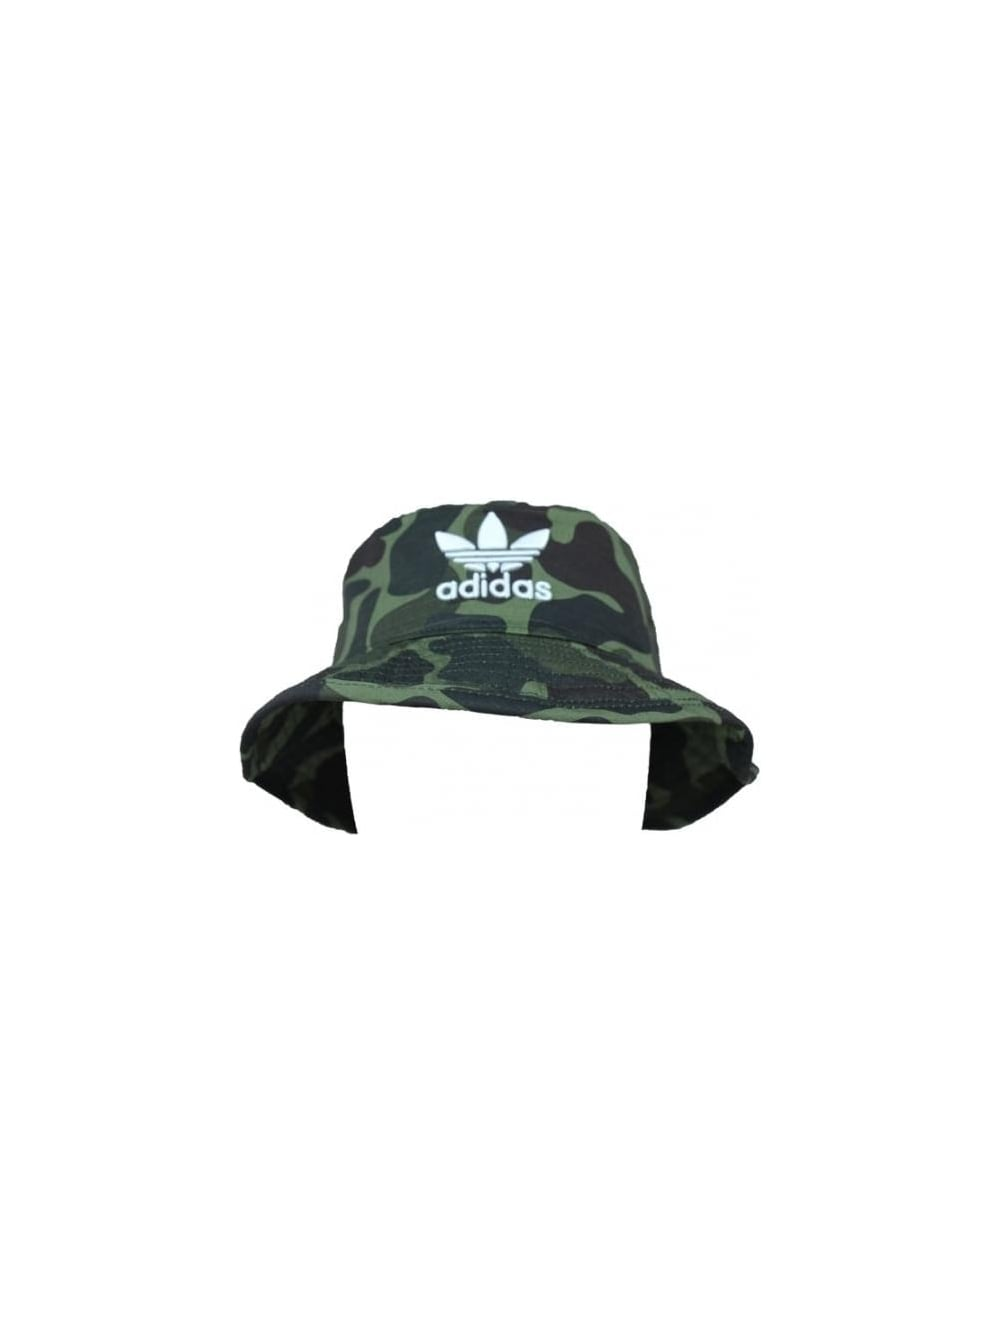 bdc79d65609 adidas Originals Camo Bucket Hat in Multi - Northern Threads